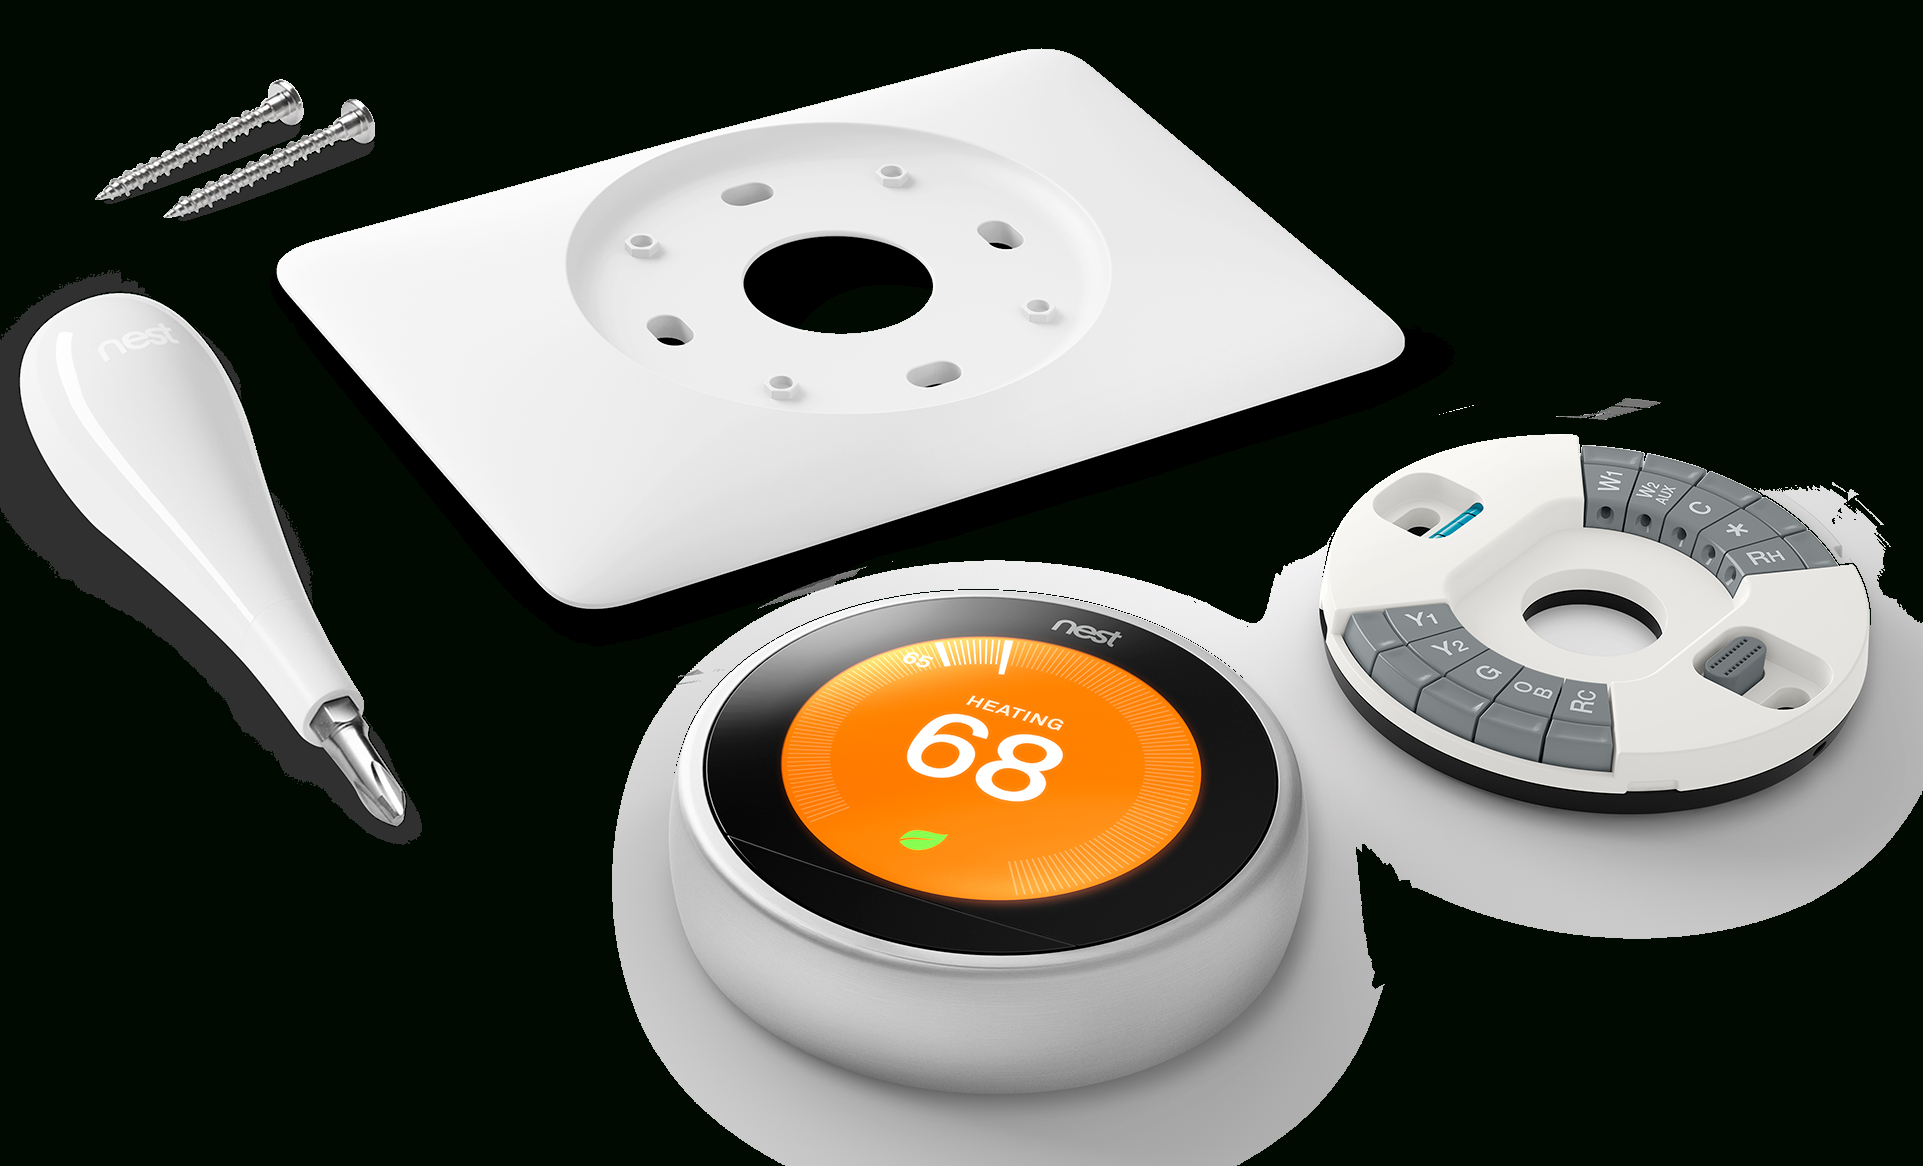 How To Install Your Nest Thermostat - Wiring Diagram For Nest E Thermostat